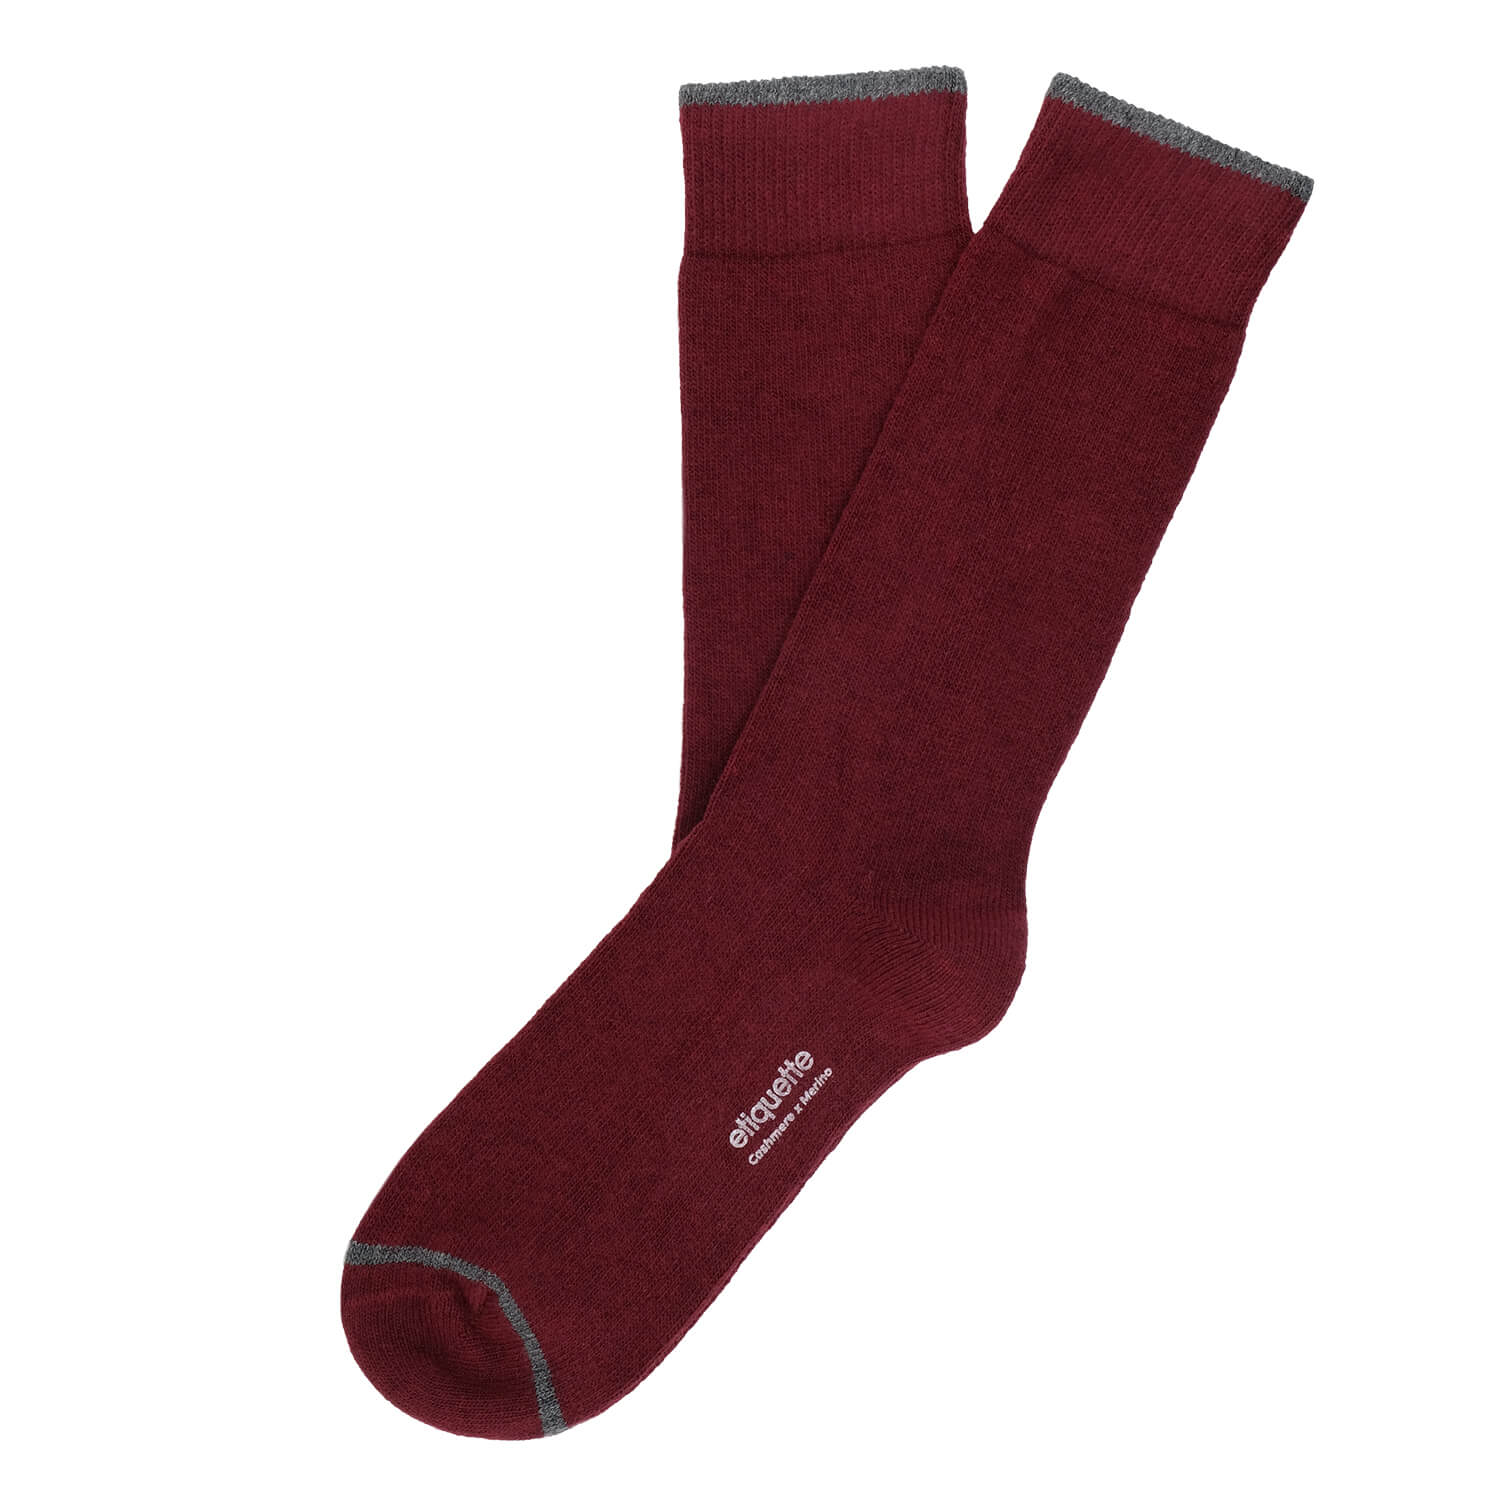 Cashmere Flat Knit - Bordeaux - Mens Socks | Etiquette Clothiers Global Official